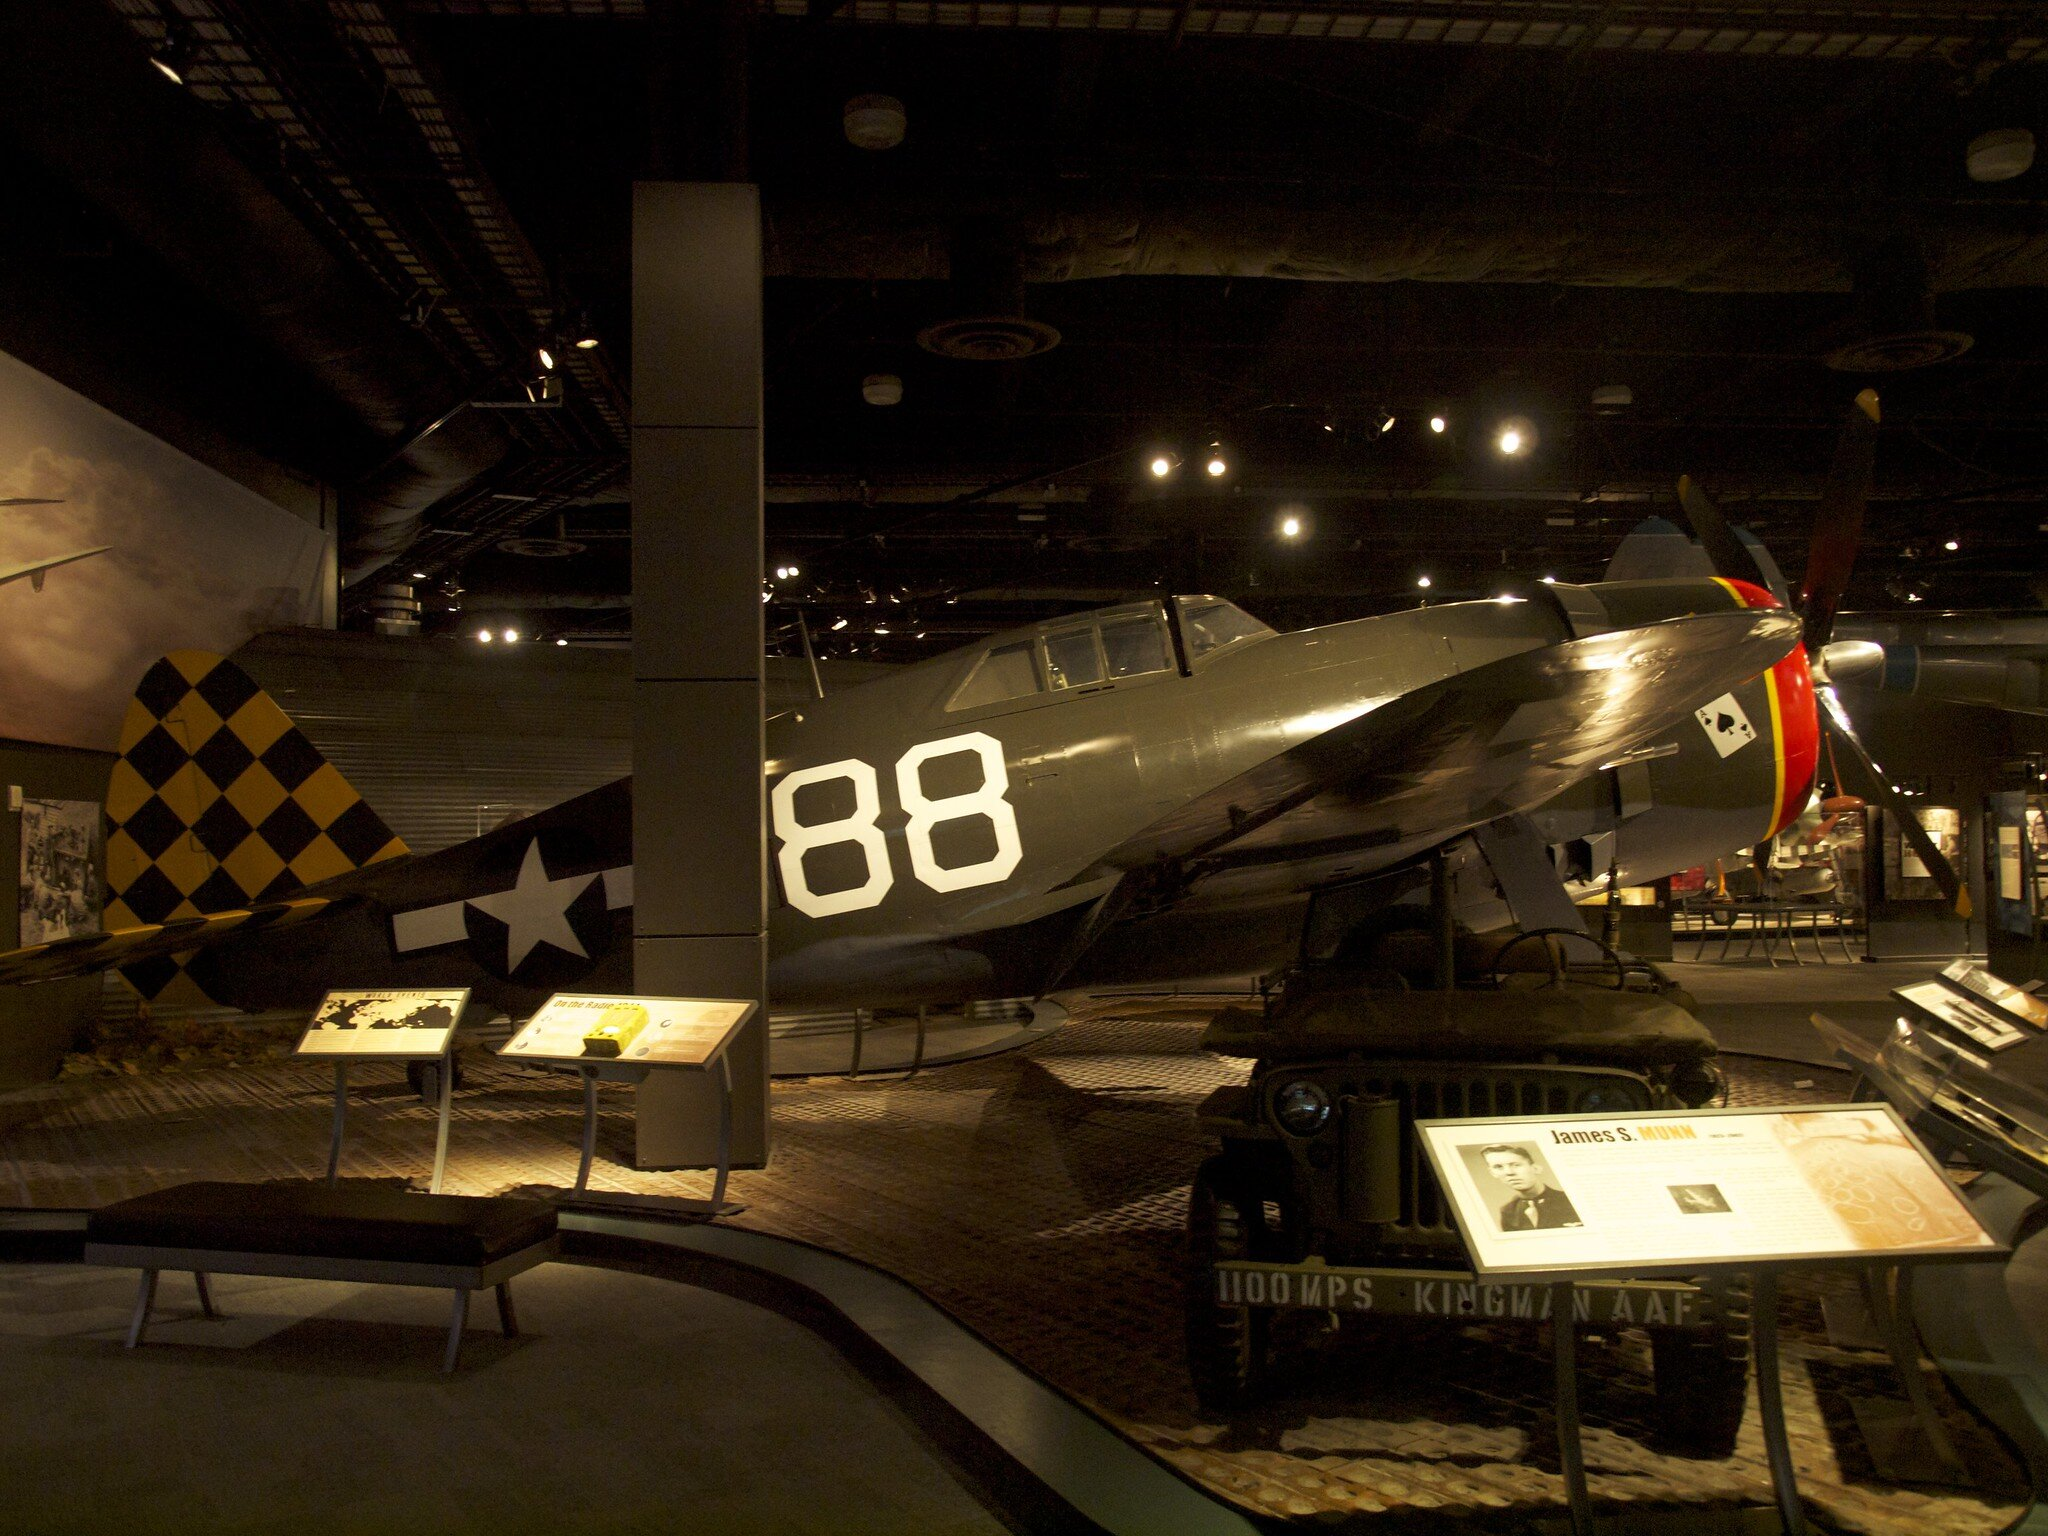 A visitor's photo from inside The Museum of Flight. Source: Gillfoto, Flikcr